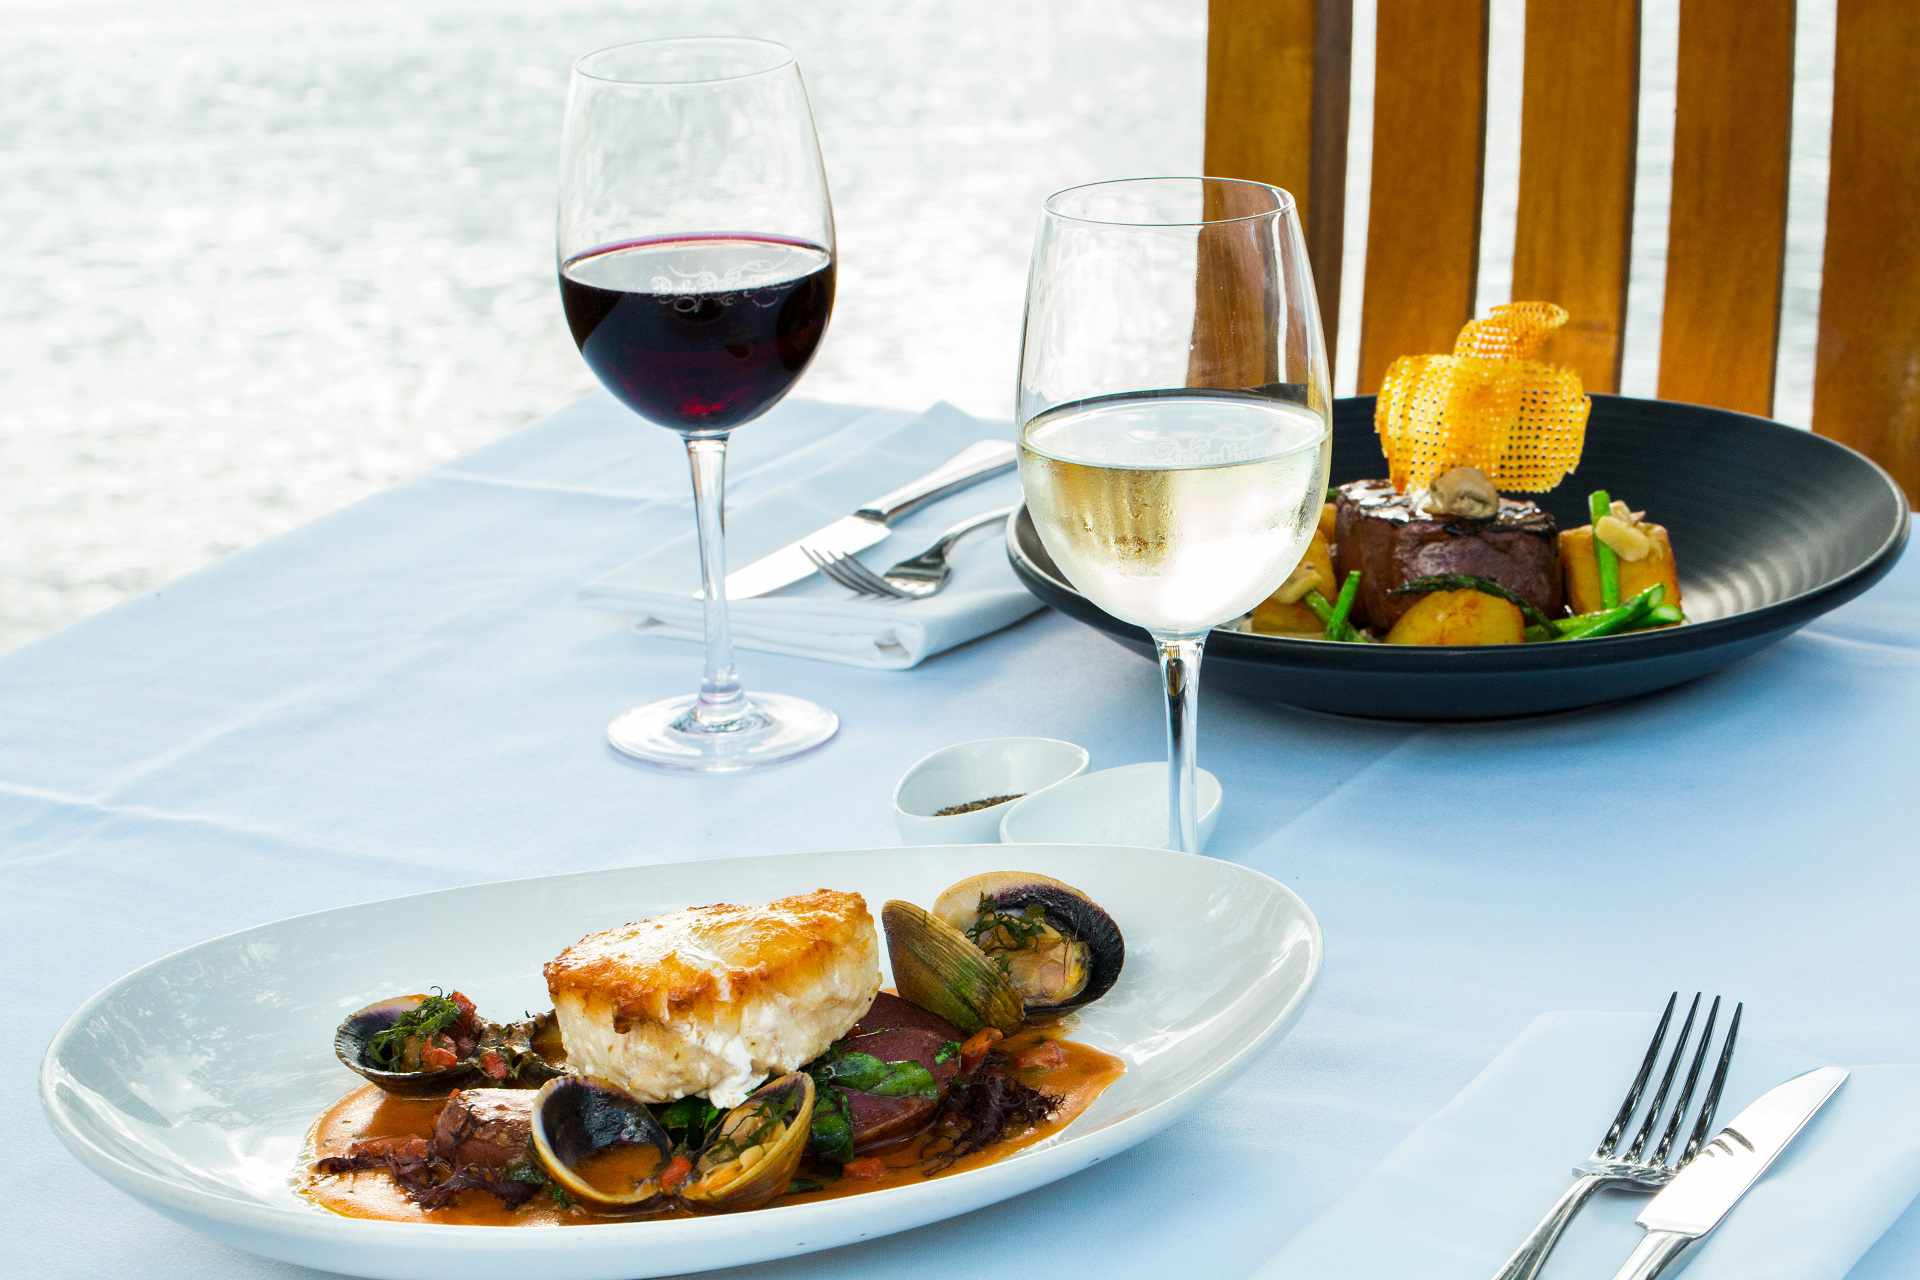 Fish and steak entree at the Duke of Marlborough Hotel Restuarant with a glass white and a glass of red wine